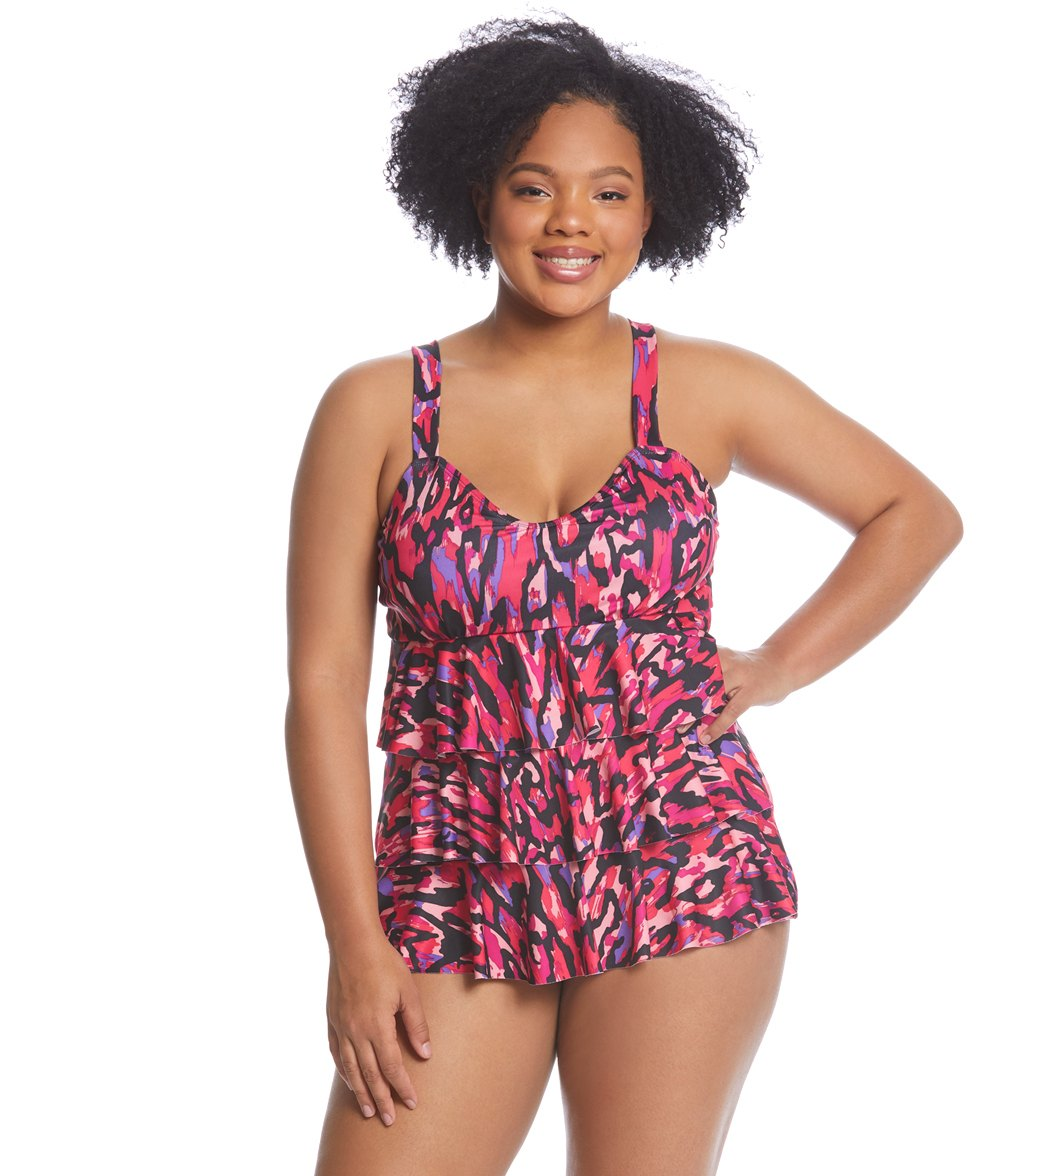 f7f828391e68b Dolfin AquaShape Women s Plus Size Ikat Ruffle Tier One Piece Swimsuit at  SwimOutlet.com - Free Shipping